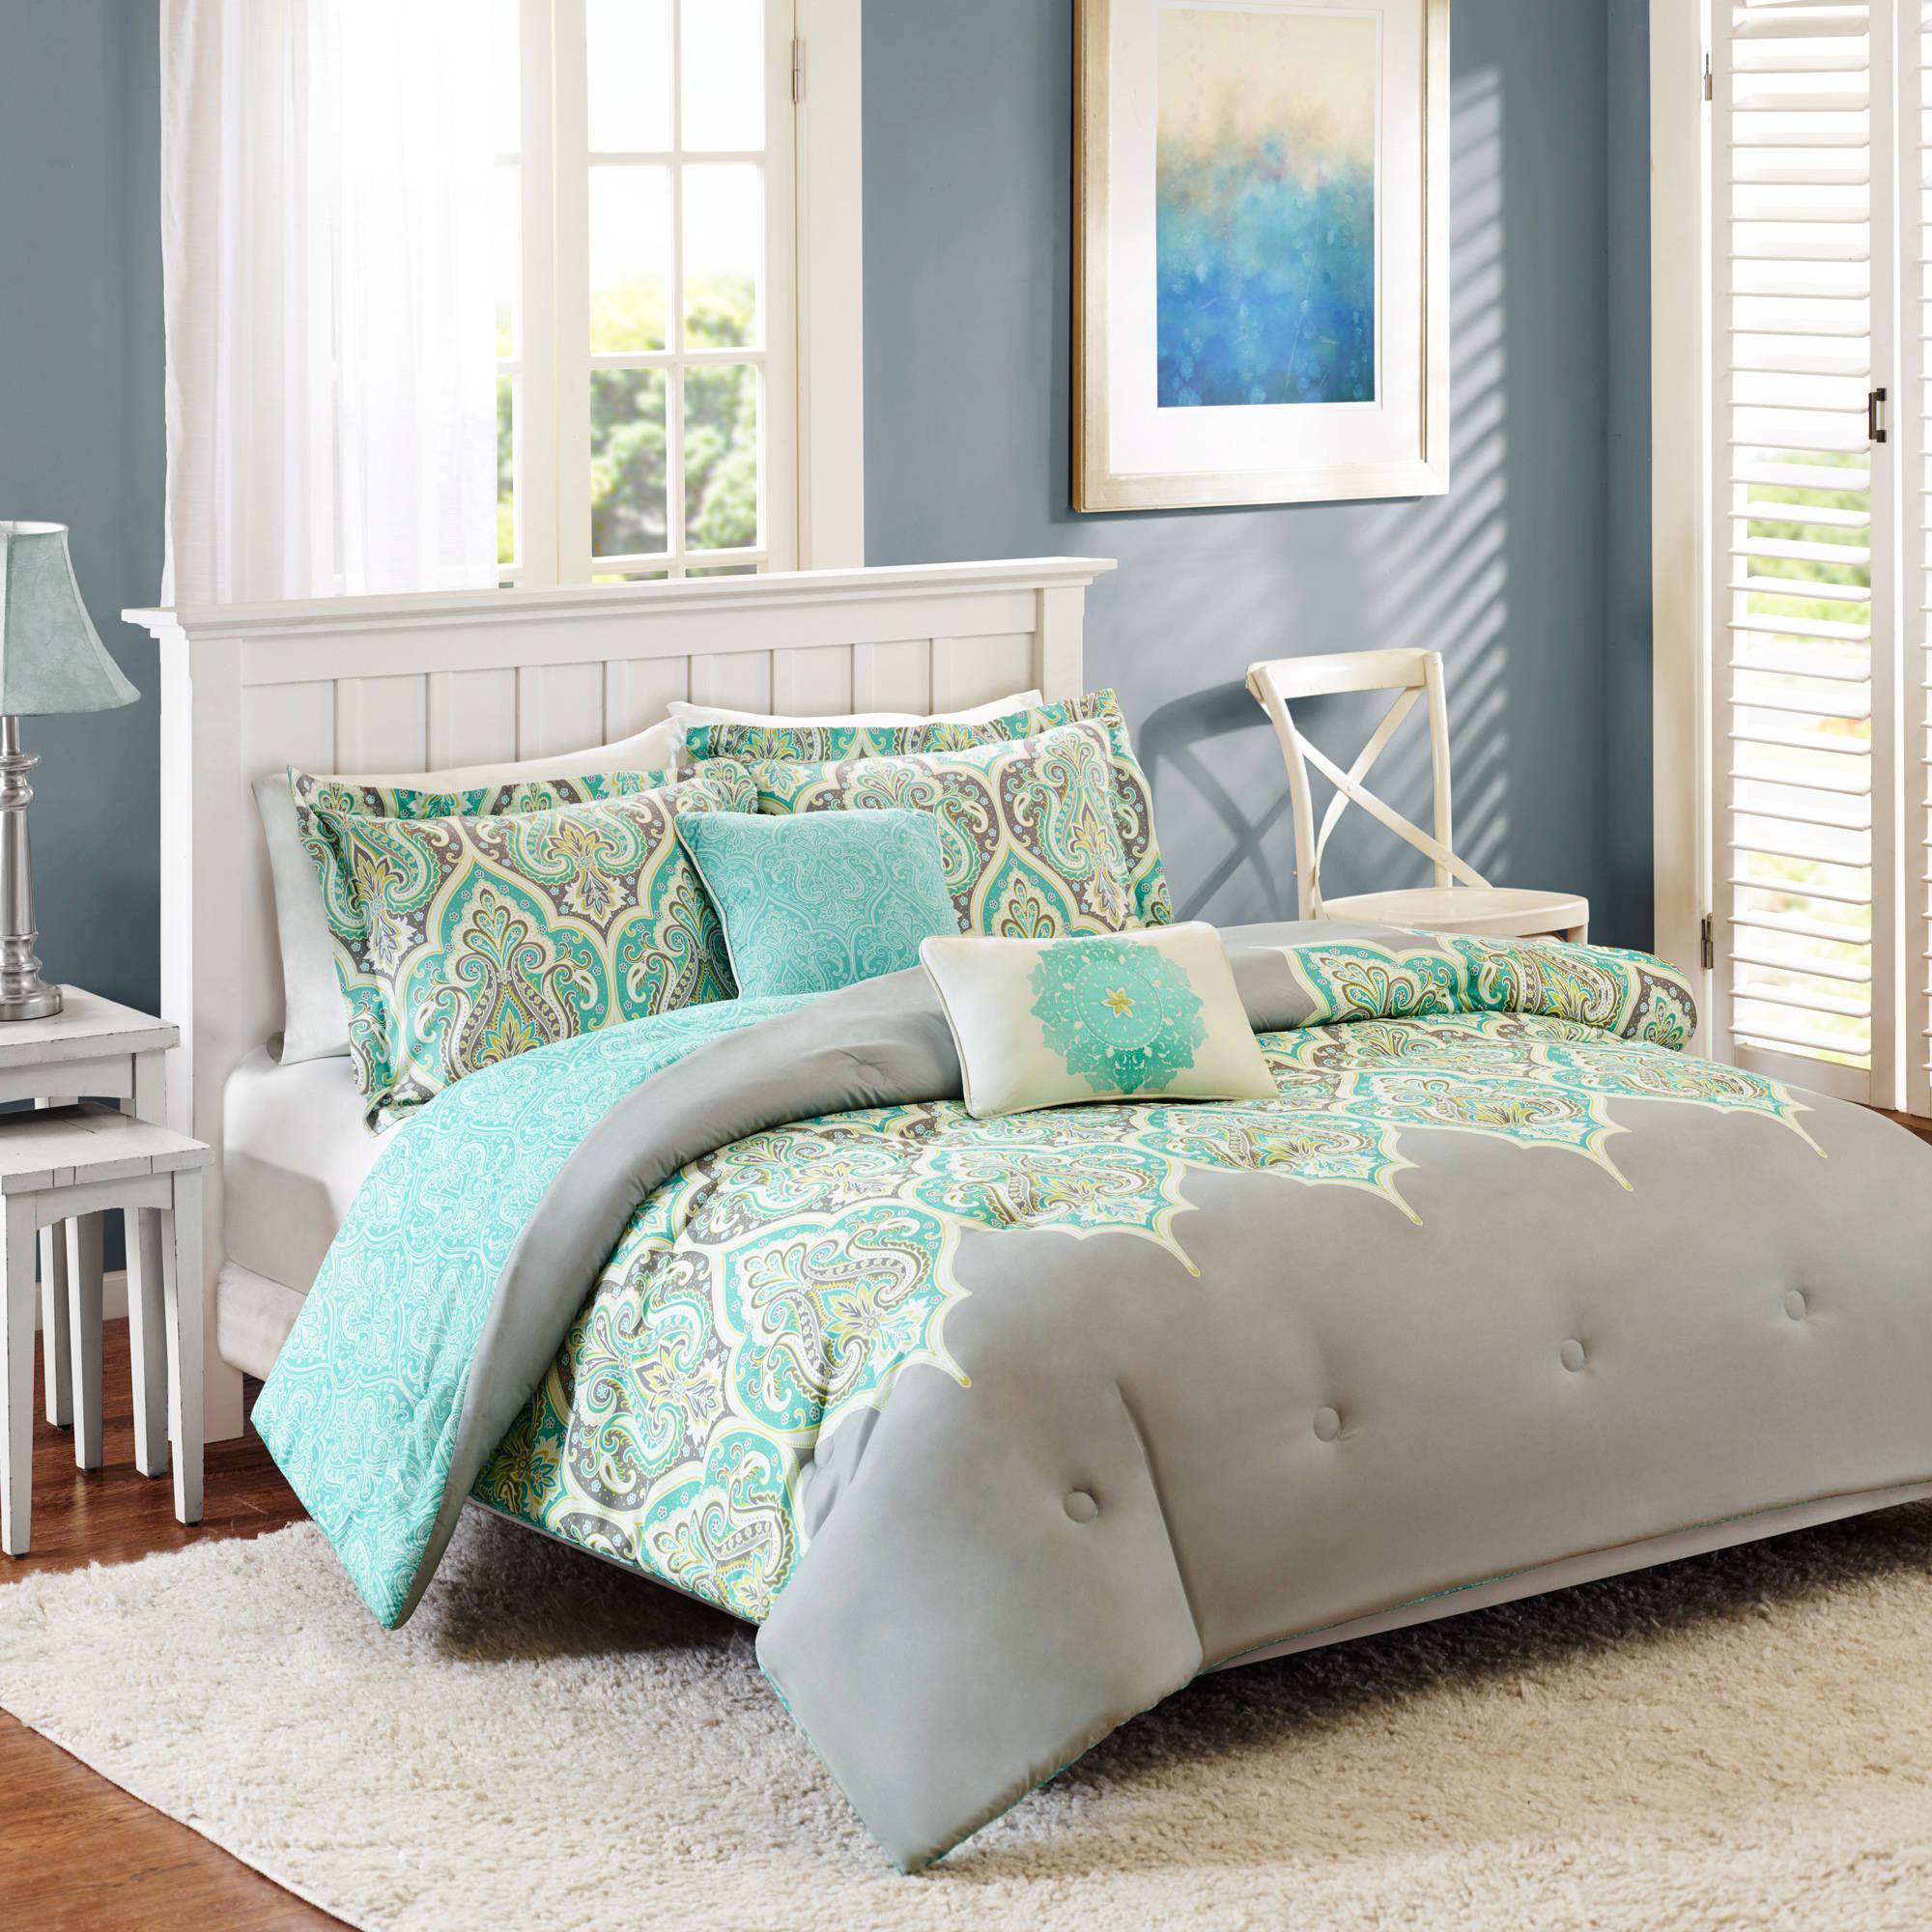 Bedding Decor: Better Homes And Garden Comforter Sets